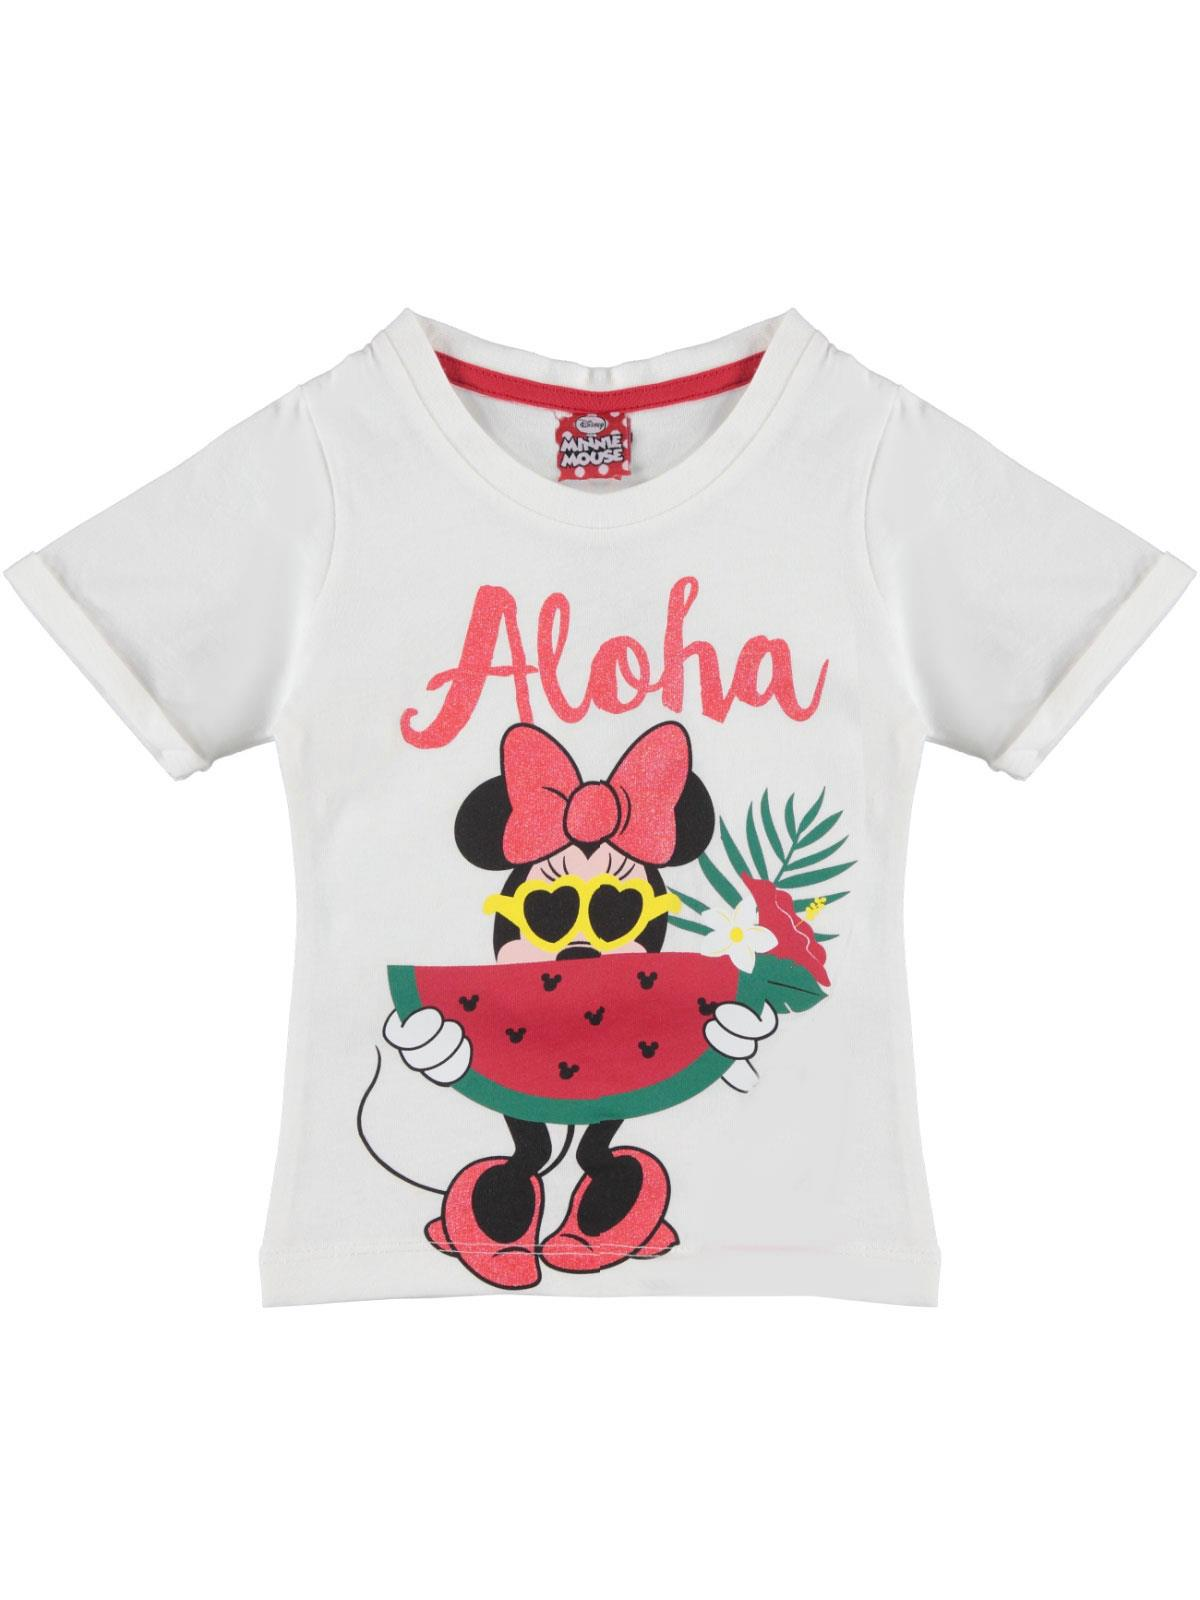 Minnie Mouse Girl Kids T-Shirt Ecru Age 1-4